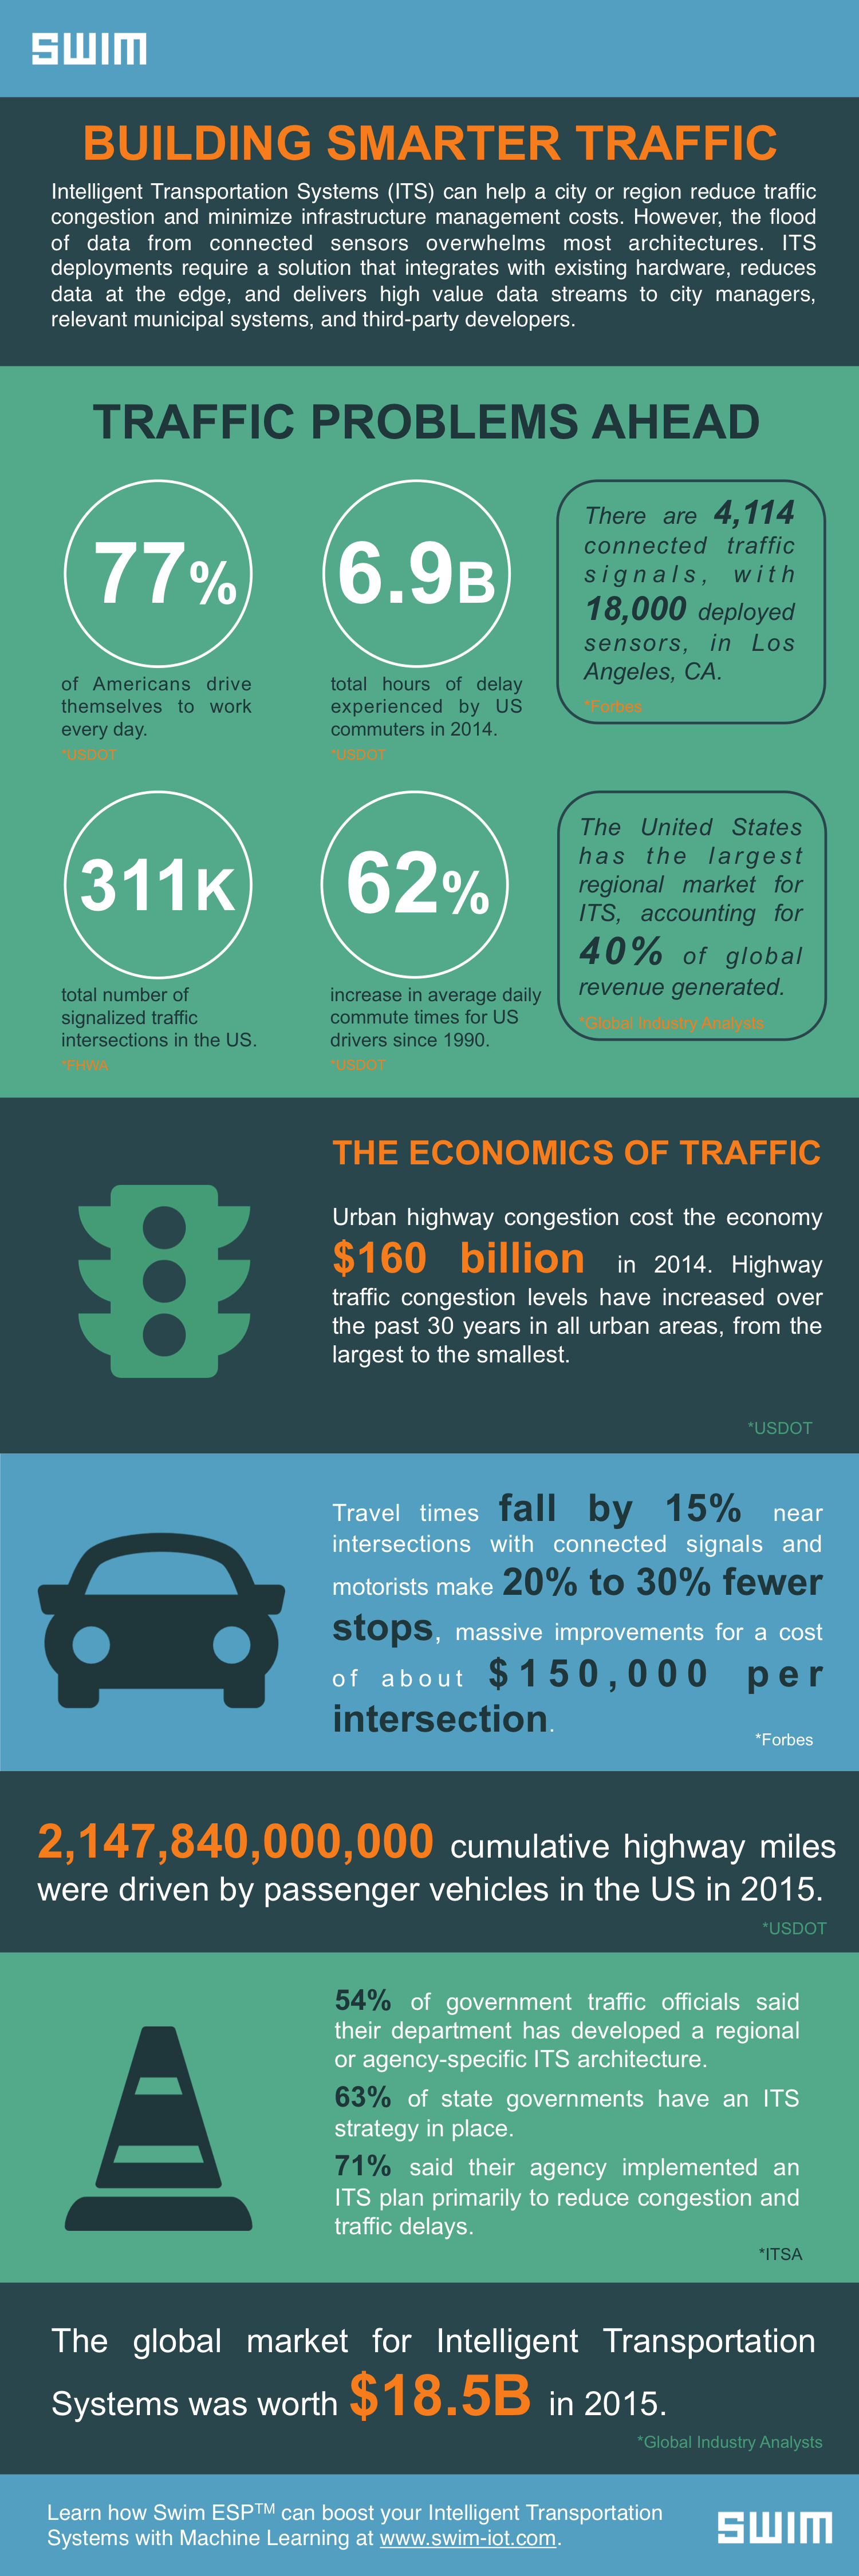 Building Smarter Traffic in Smart Cities - Traffic Statistics: IOT Infographic | Swim Inc.